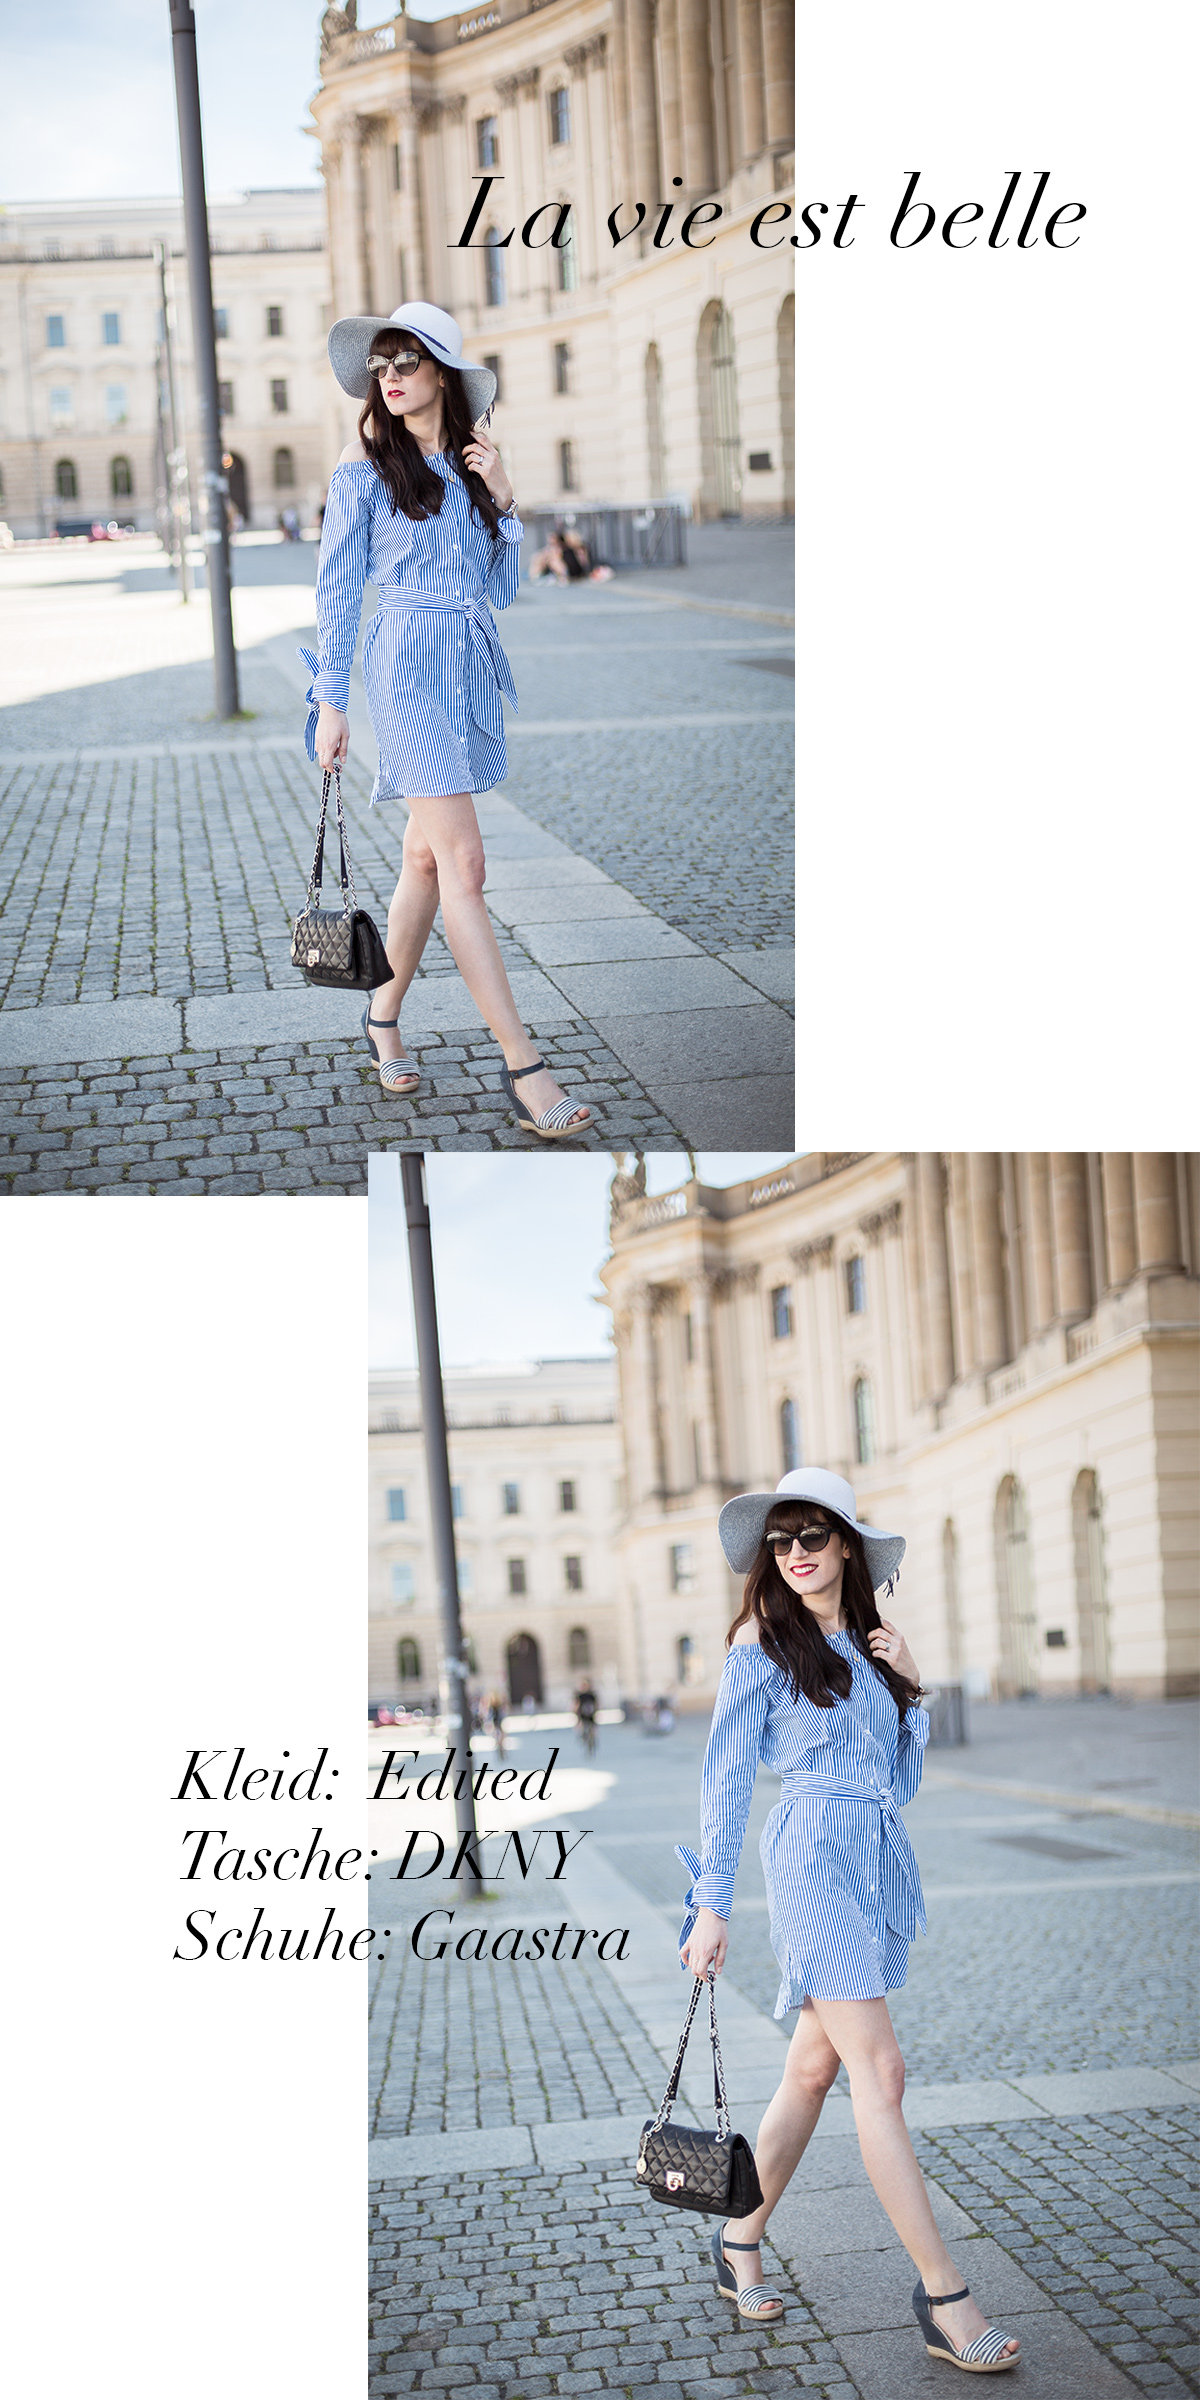 Bild: Outfit, Carmenausschnitt, Off Shoulder, Streifenkleid, Kleid, Edited the Label, About You, Sailor Wedges, DKNY, Streifen Wedges, Look, Streetstyle, Outfit, ootd, Style, Blogger, Fashionblogger, Modeblogger, Shades of Ivory, Berlin